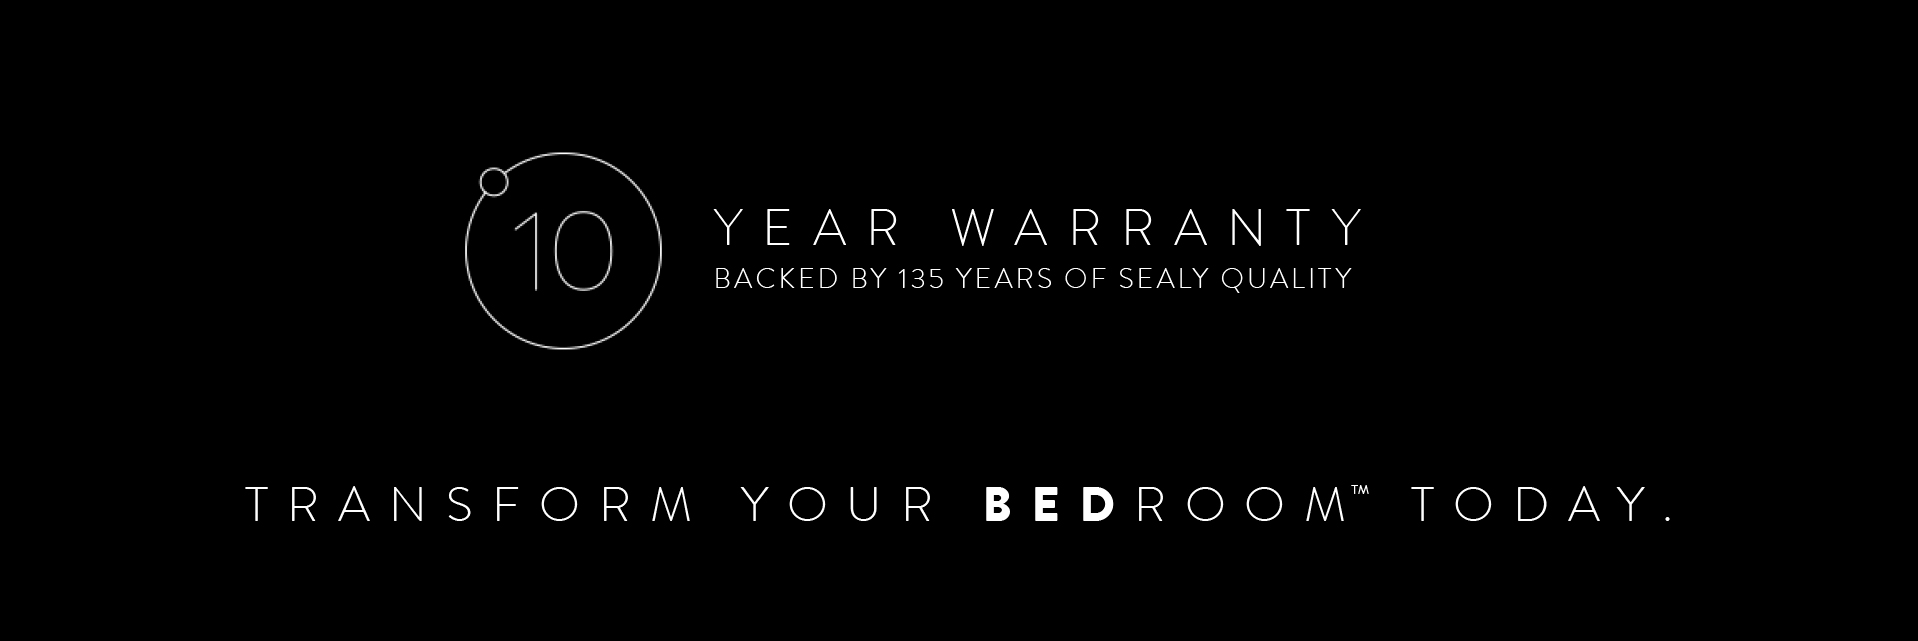 10 Year Warranty. Backed by 135 Years of Sealy Quality. Transform Your BedroomTM today.